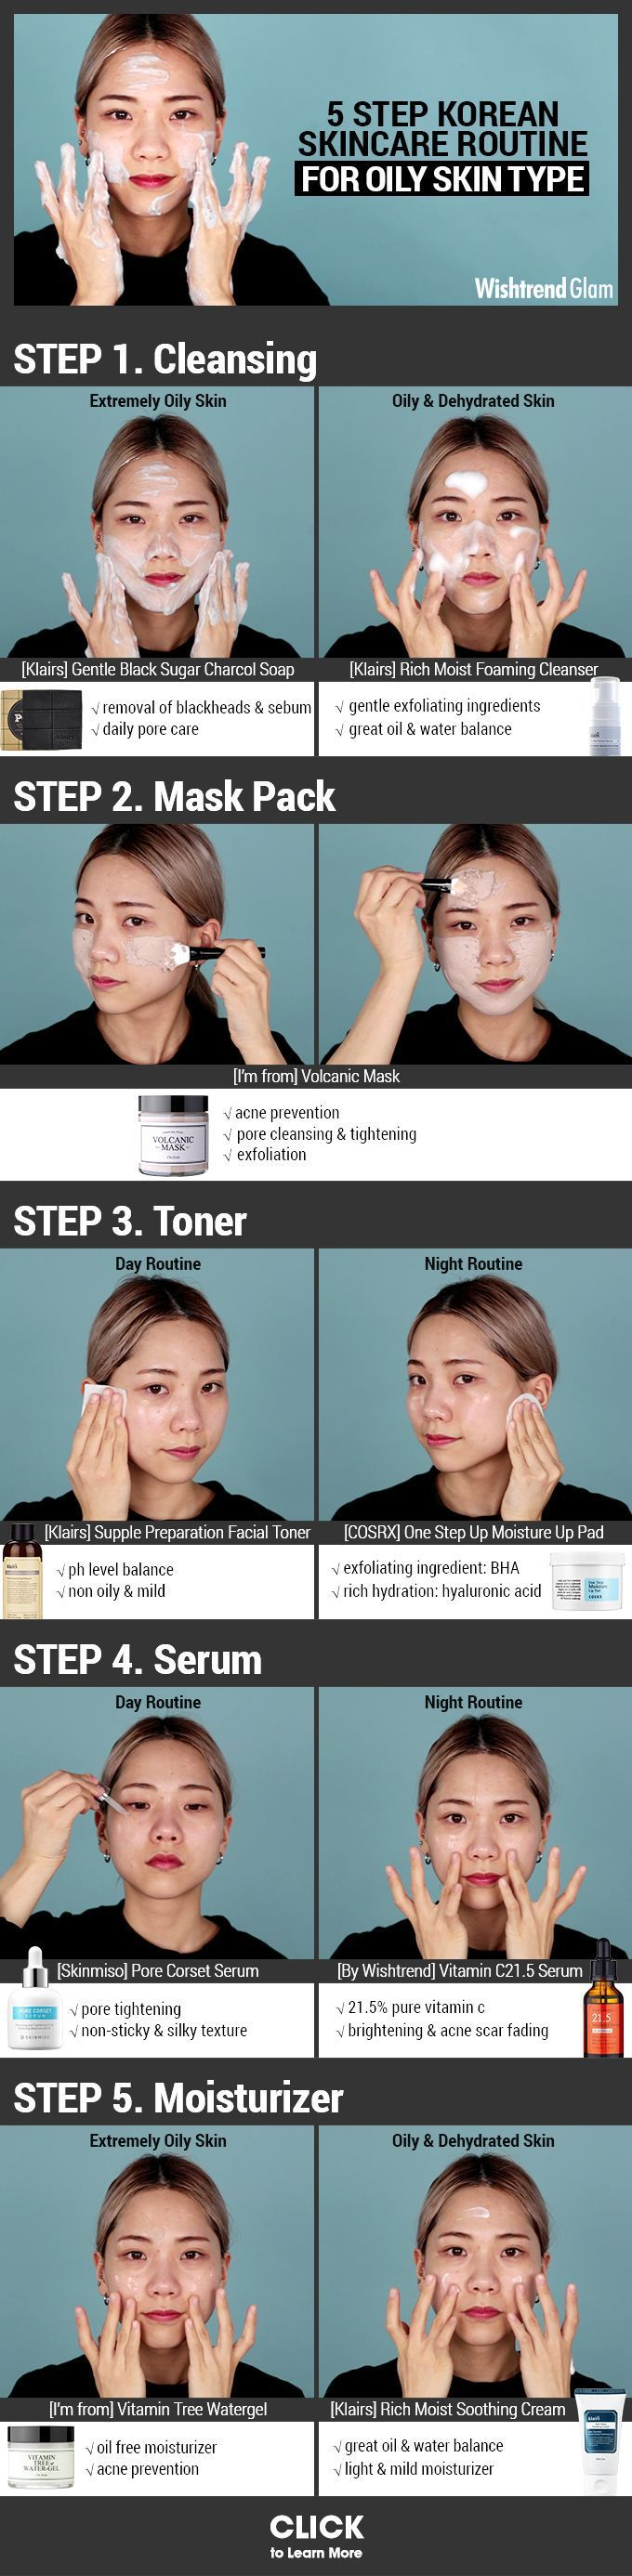 DIY MASK For Acne : 5 STEP KOREAN SKINCARE ROUTINE FOR OILY SKIN TYPE